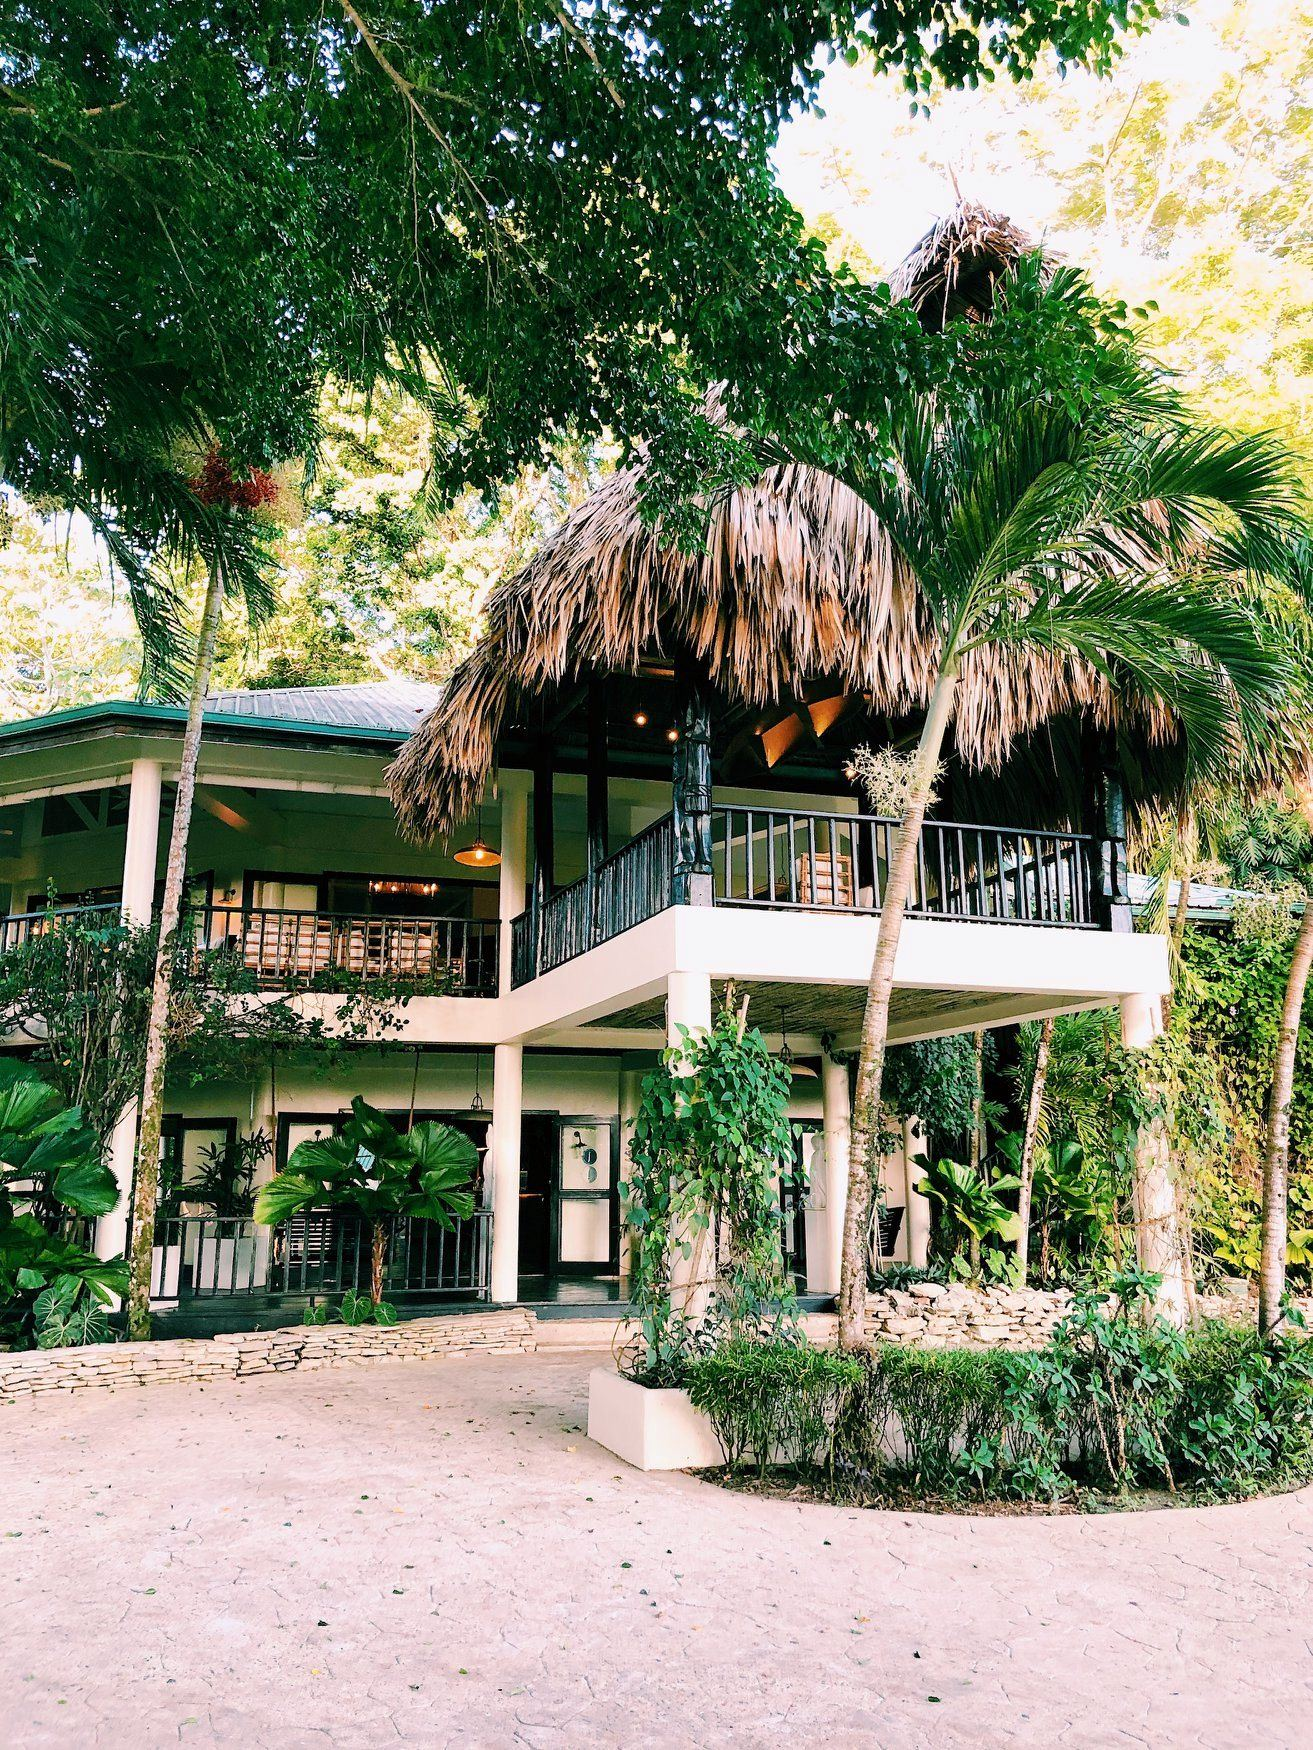 Copal Tree Lodge - 1